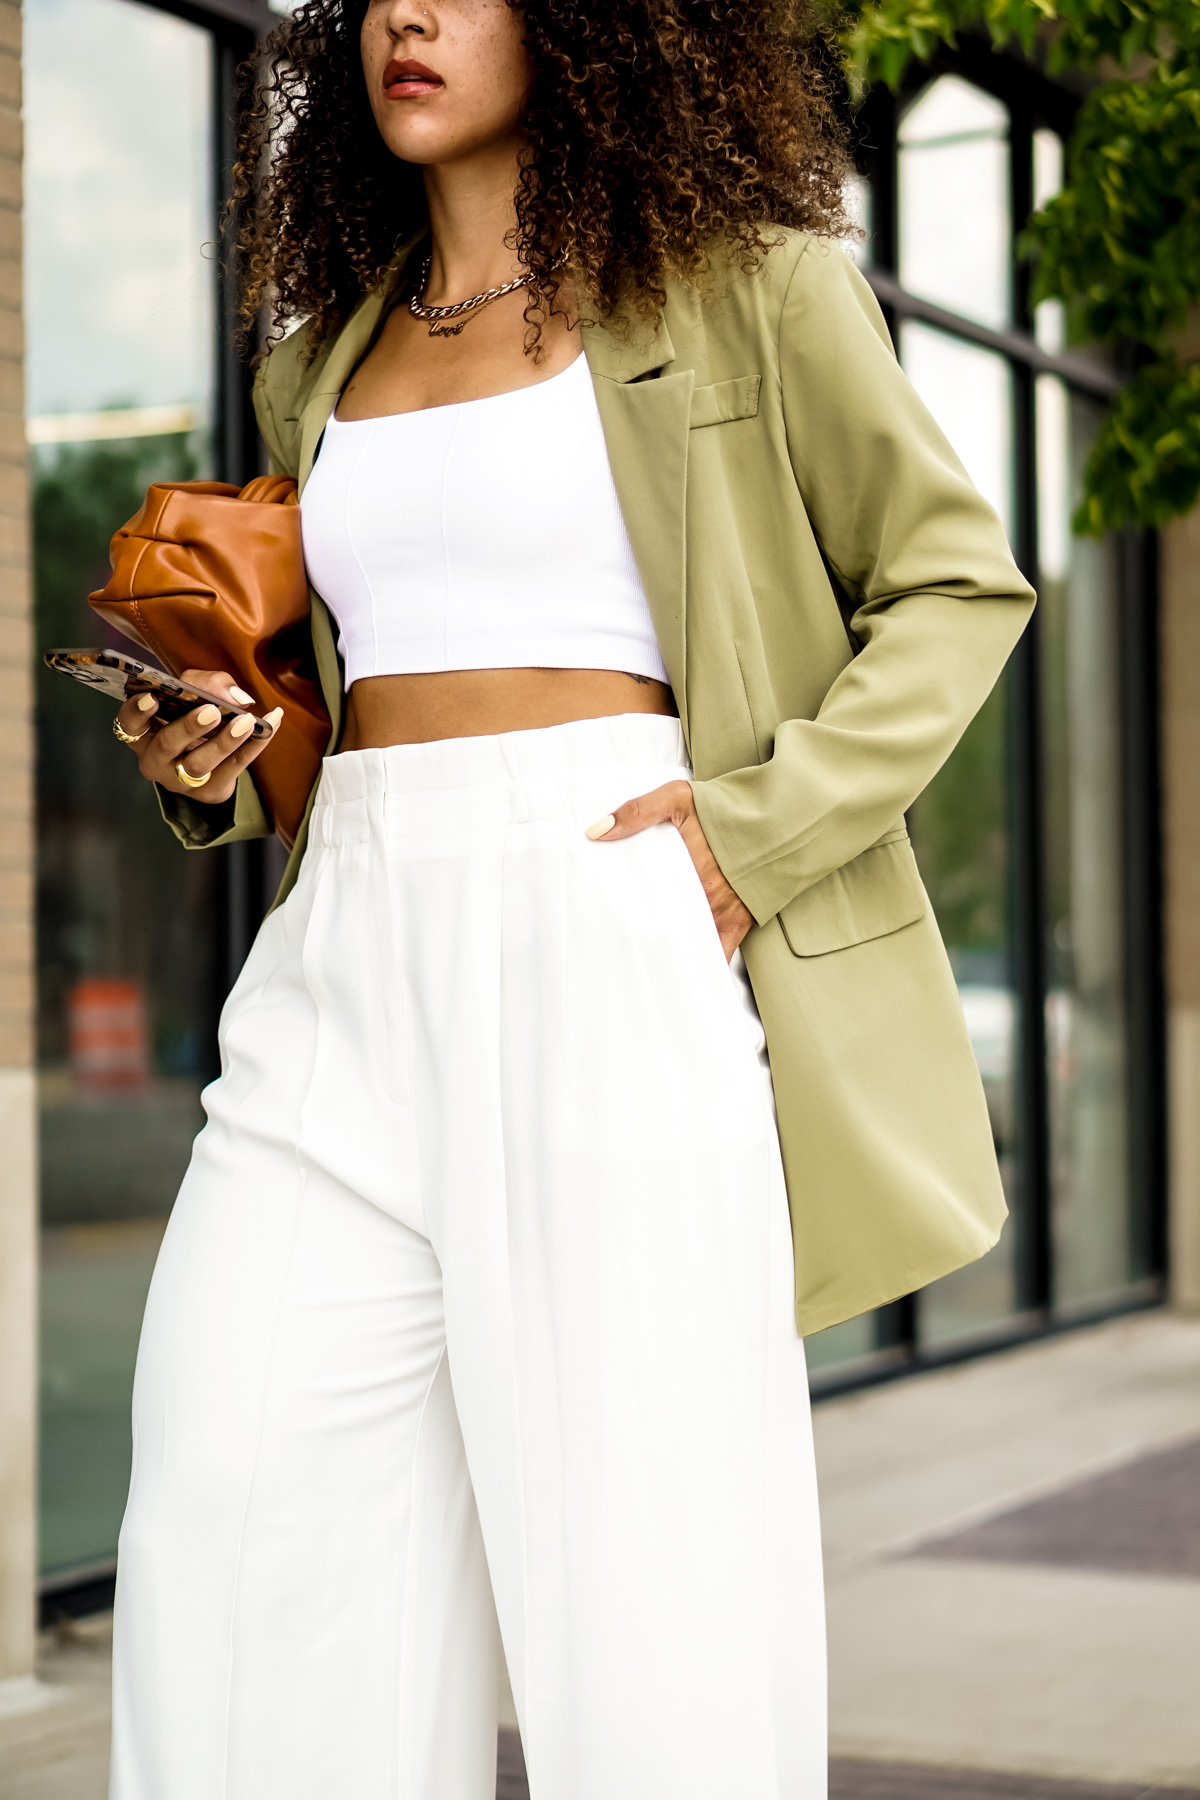 green blazer outfit idea for women, chic summer outfit ideas for women, latest fashion trends for women what to wear, black fashion bloggers inspiration